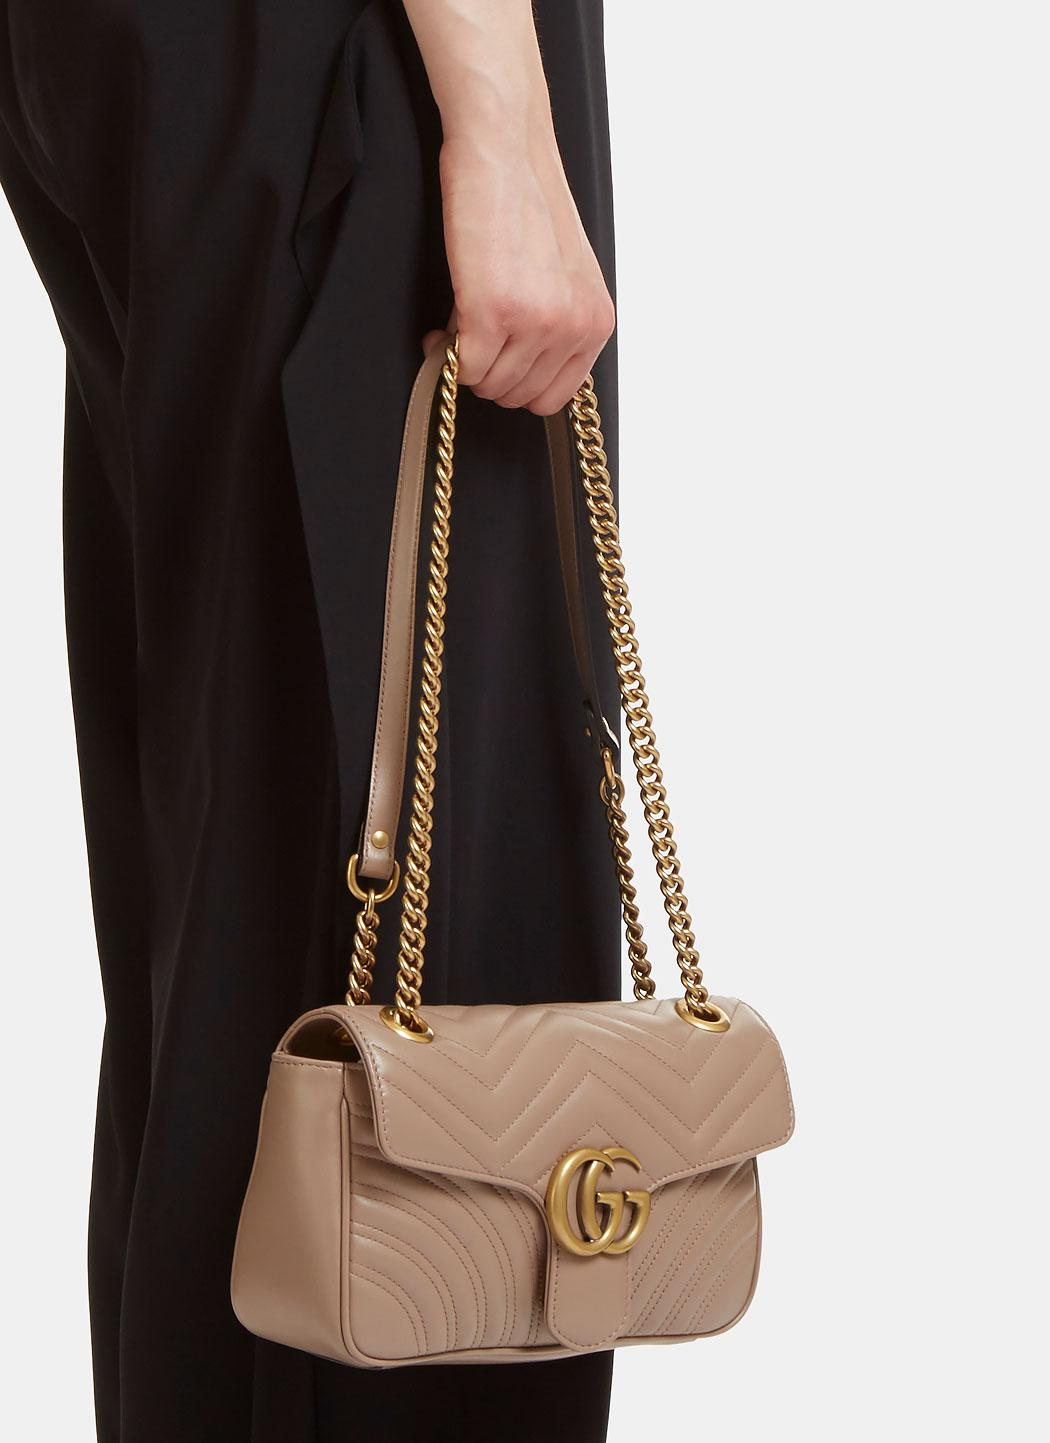 64187707a5b Lyst - Gucci Gg Marmont Matelassé Small Chain Shoulder Bag In Taupe ...